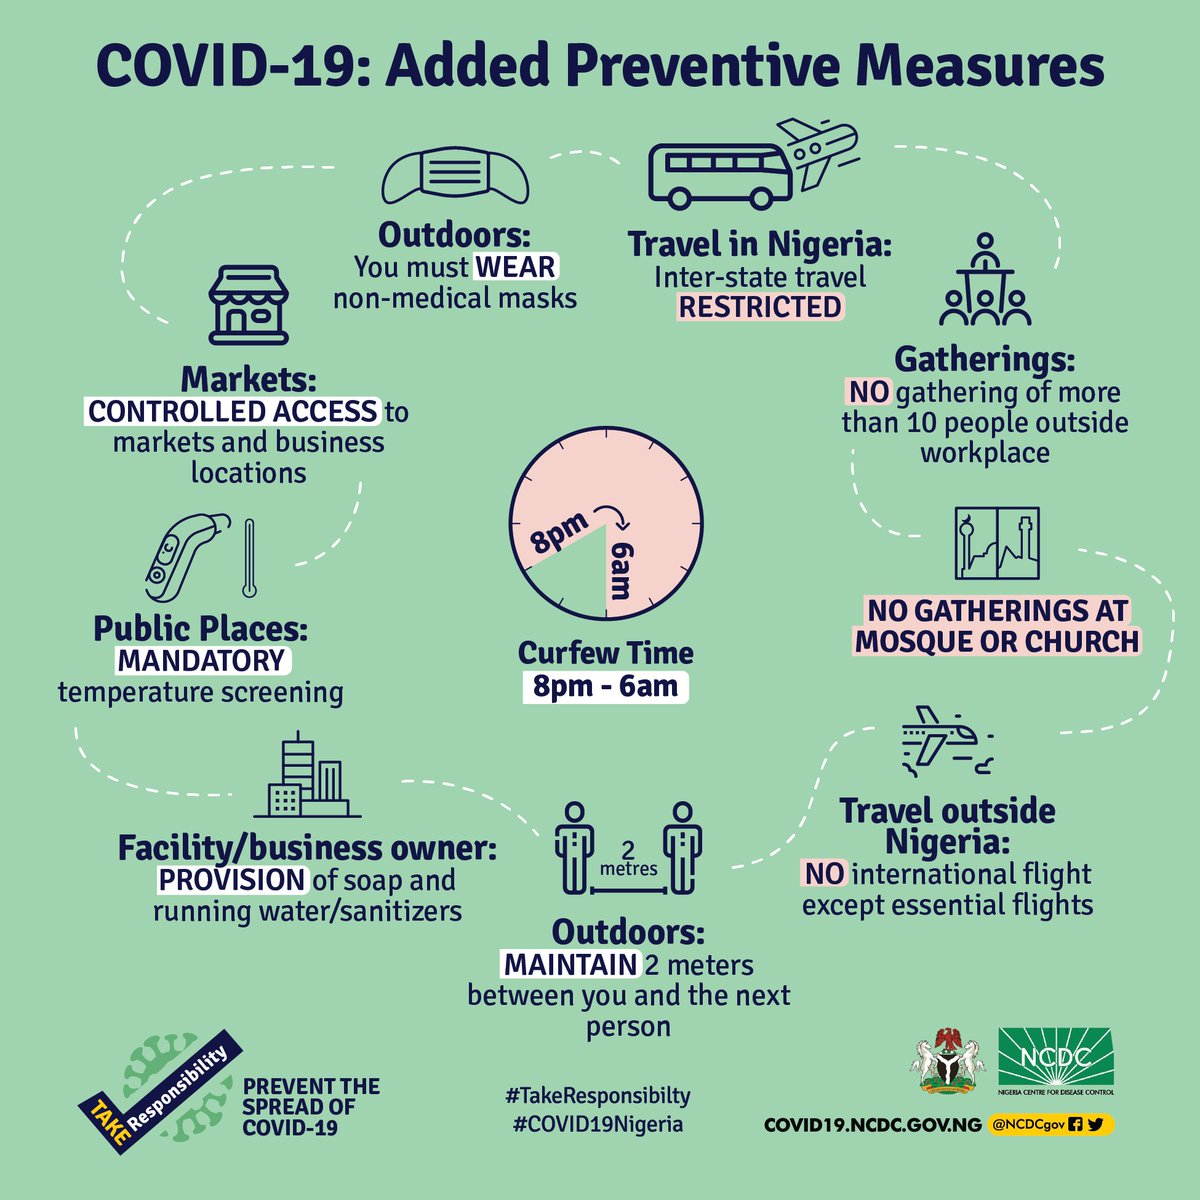 Despite the ease of the lockdown starting 4th May, it is critical for Nigerians to adhere to these measures to #PreventCOVID19 spread:  🕗Daily curfew from 8pm-6am 😷Mandatory use of mask  🕌Ban on social & religious gatherings 🚎 Restricted inter-state travel  Share widely! https://t.co/KzfTJC1Hx7